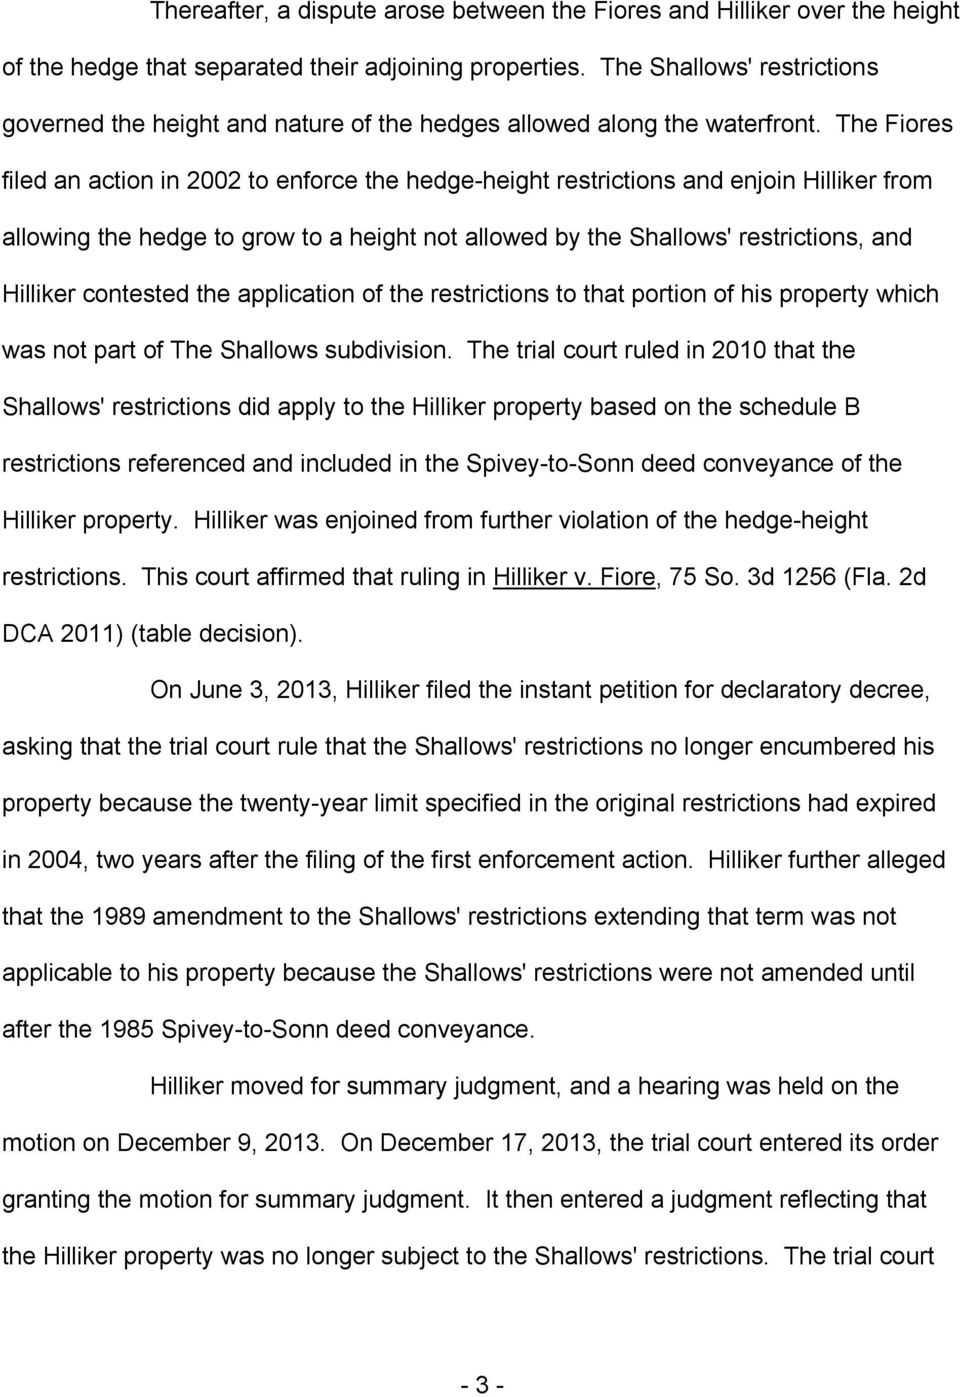 The Fiores filed an action in 2002 to enforce the hedge-height restrictions and enjoin Hilliker from allowing the hedge to grow to a height not allowed by the Shallows' restrictions, and Hilliker